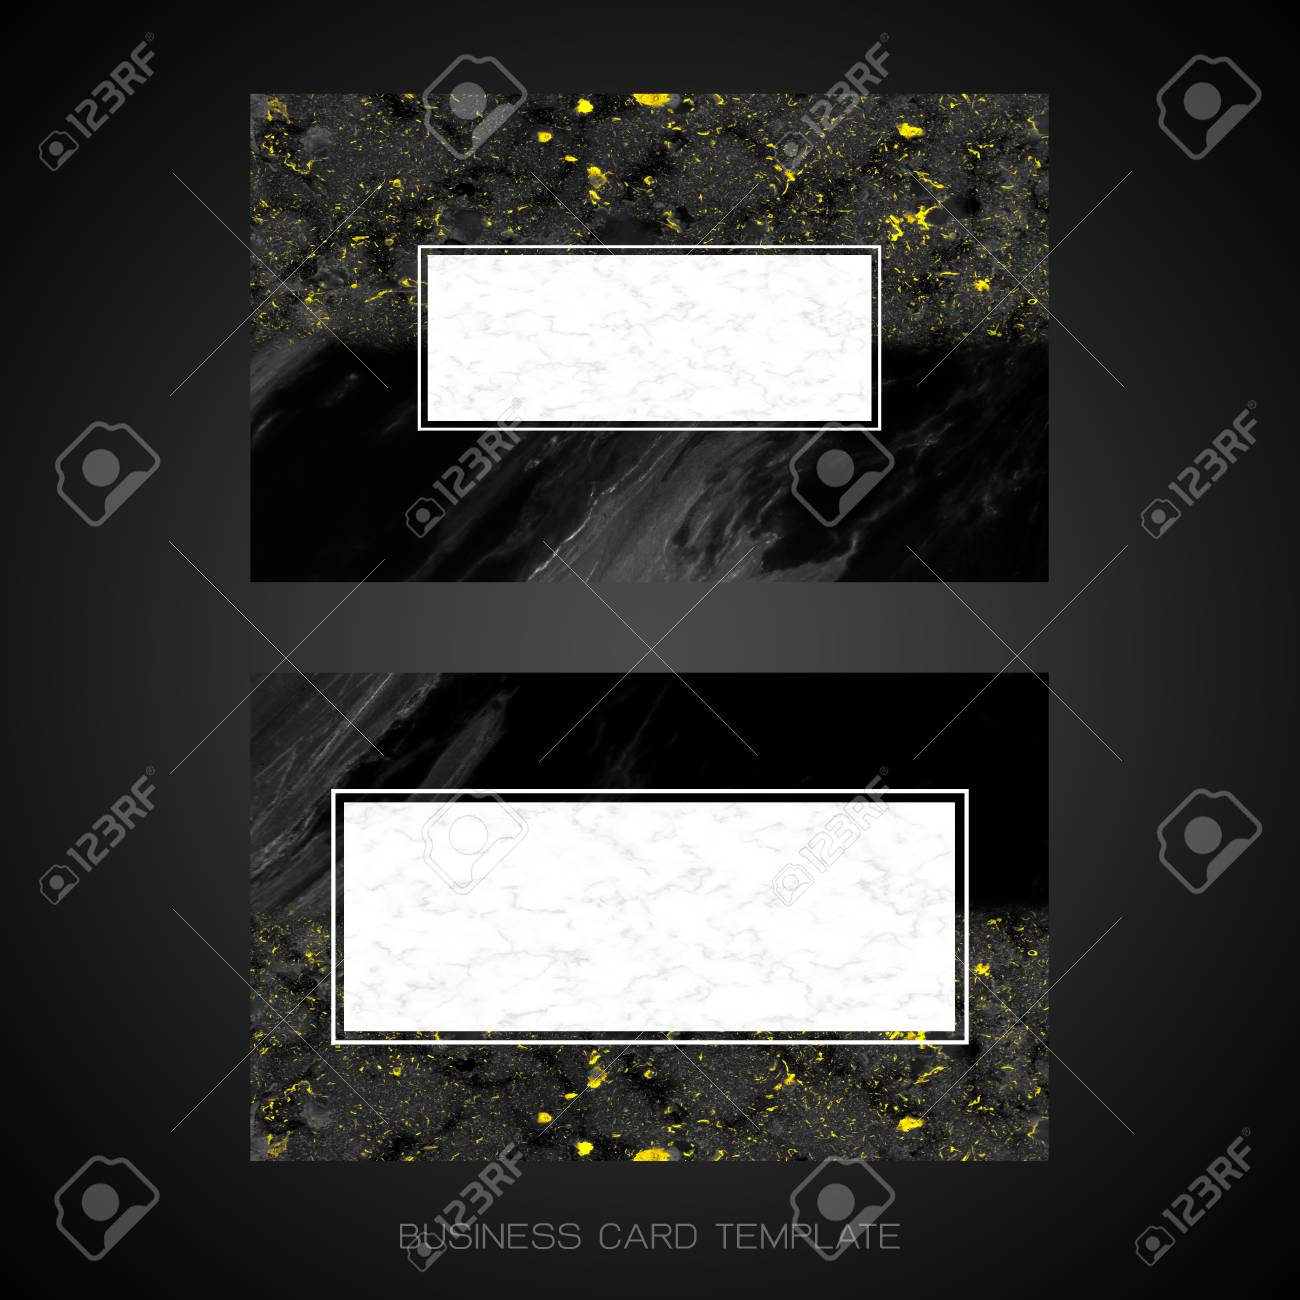 Modern business card layout template black and golden marble modern business card layout template black and golden marble background for luxury design clipping fbccfo Gallery